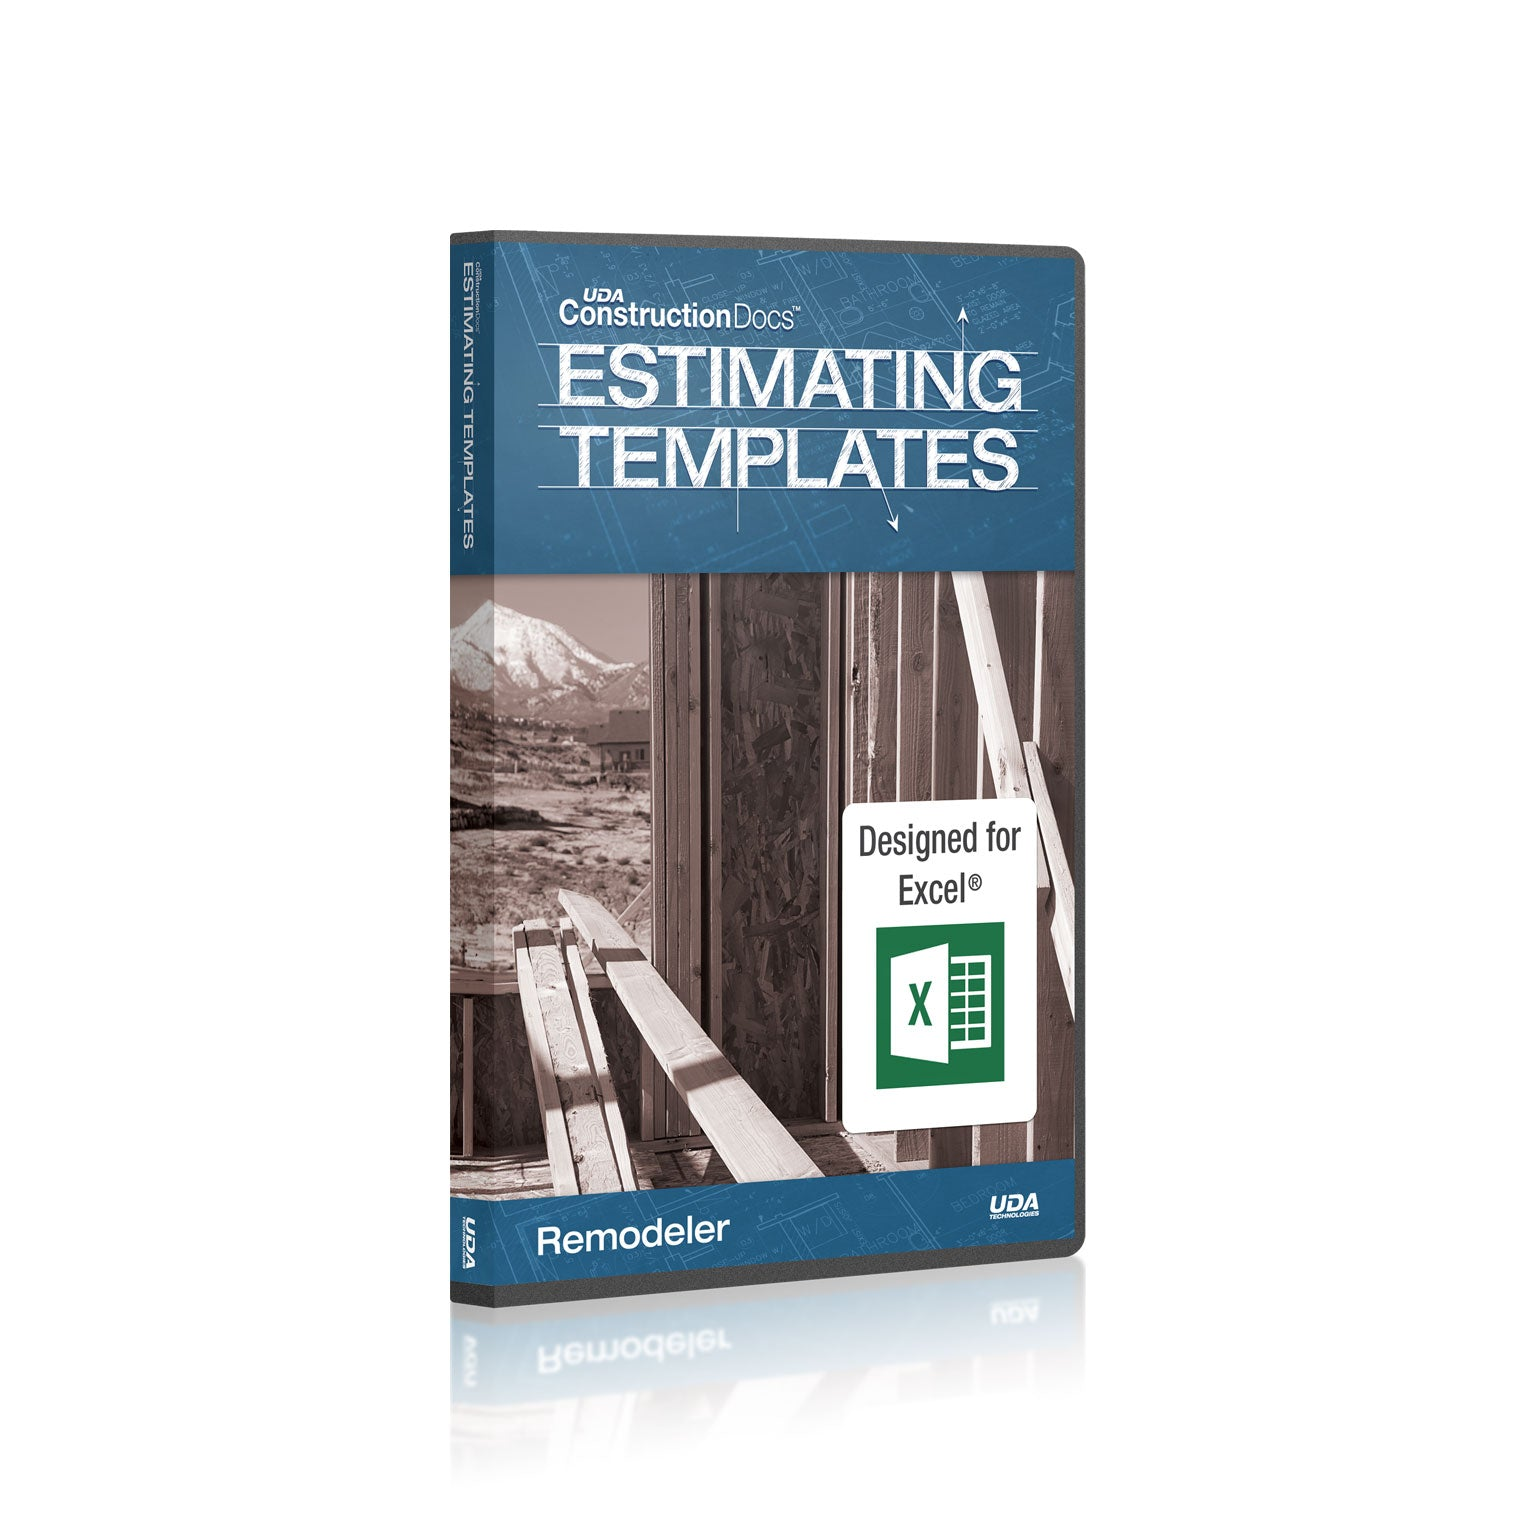 UDA ConstructionDocs™ Remodeler Estimating Templates